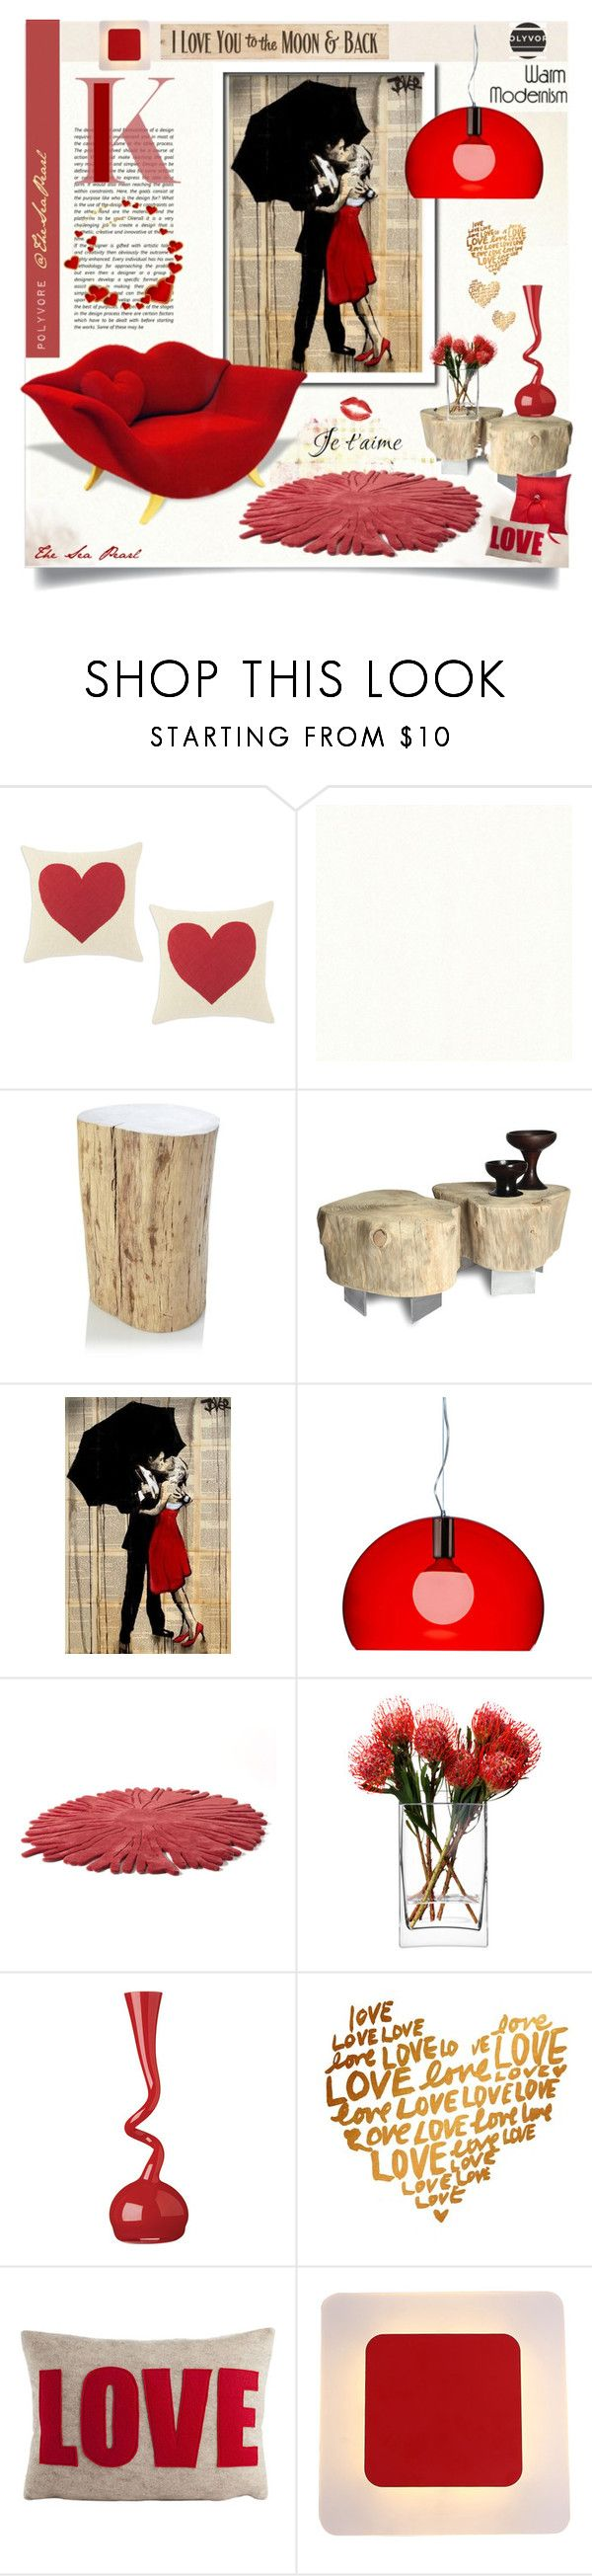 """""""Pls. READ👇 :Love Story♡"""" by theseapearl ❤ liked on Polyvore featuring interior, interiors, interior design, home, home decor, interior decorating, French Connection, Kartell, Nodus and LSA International"""